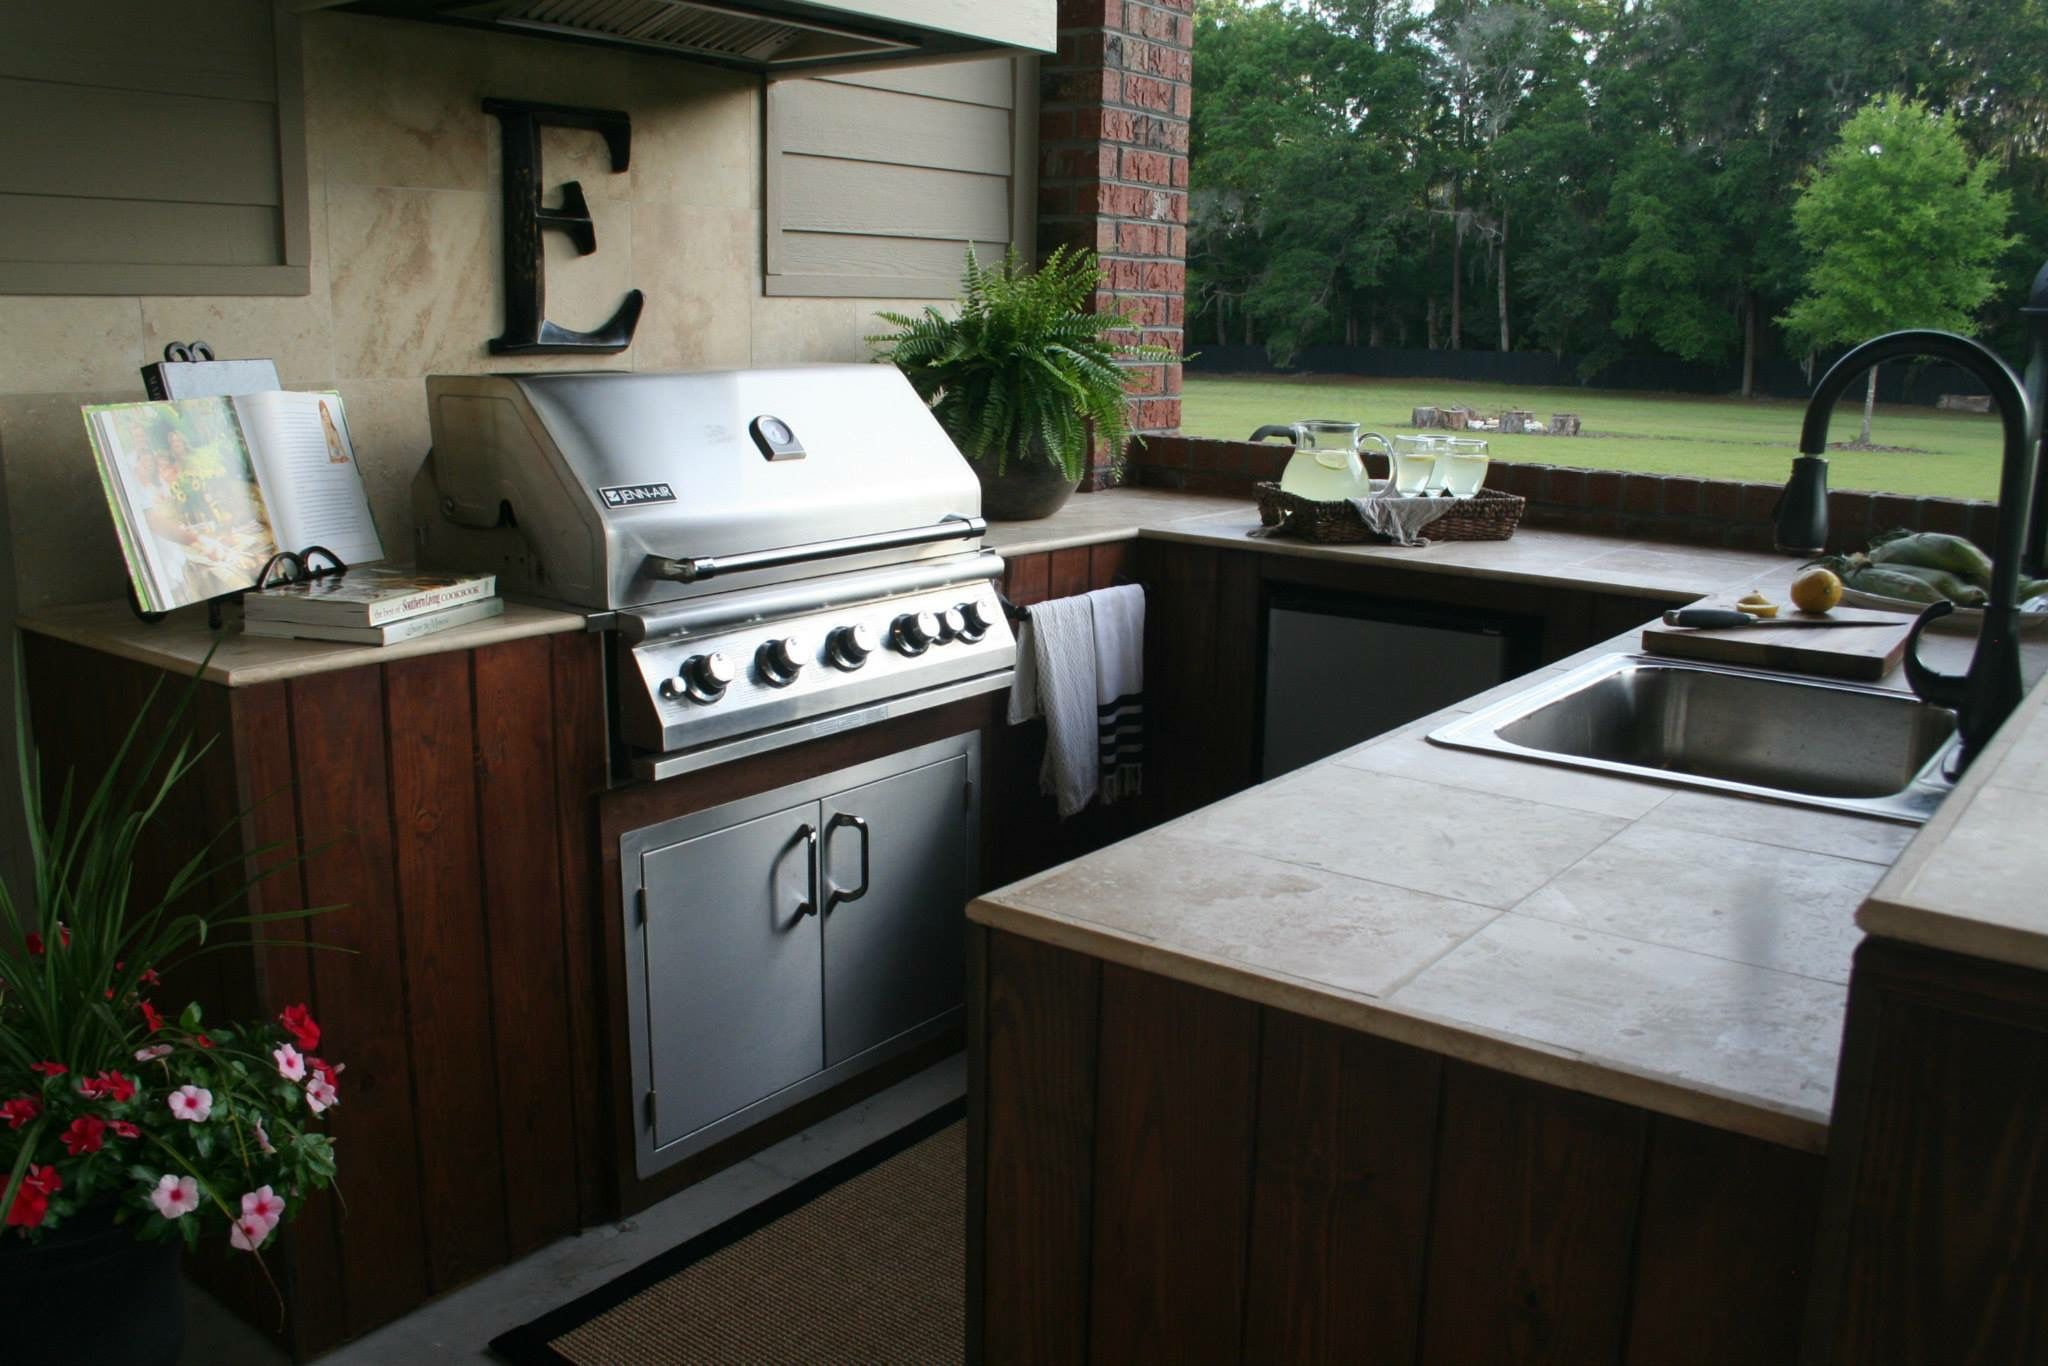 Project Spotlight Our Home Outdoor Kitchen Kitchen Renovation Outdoor Kitchen Appliances